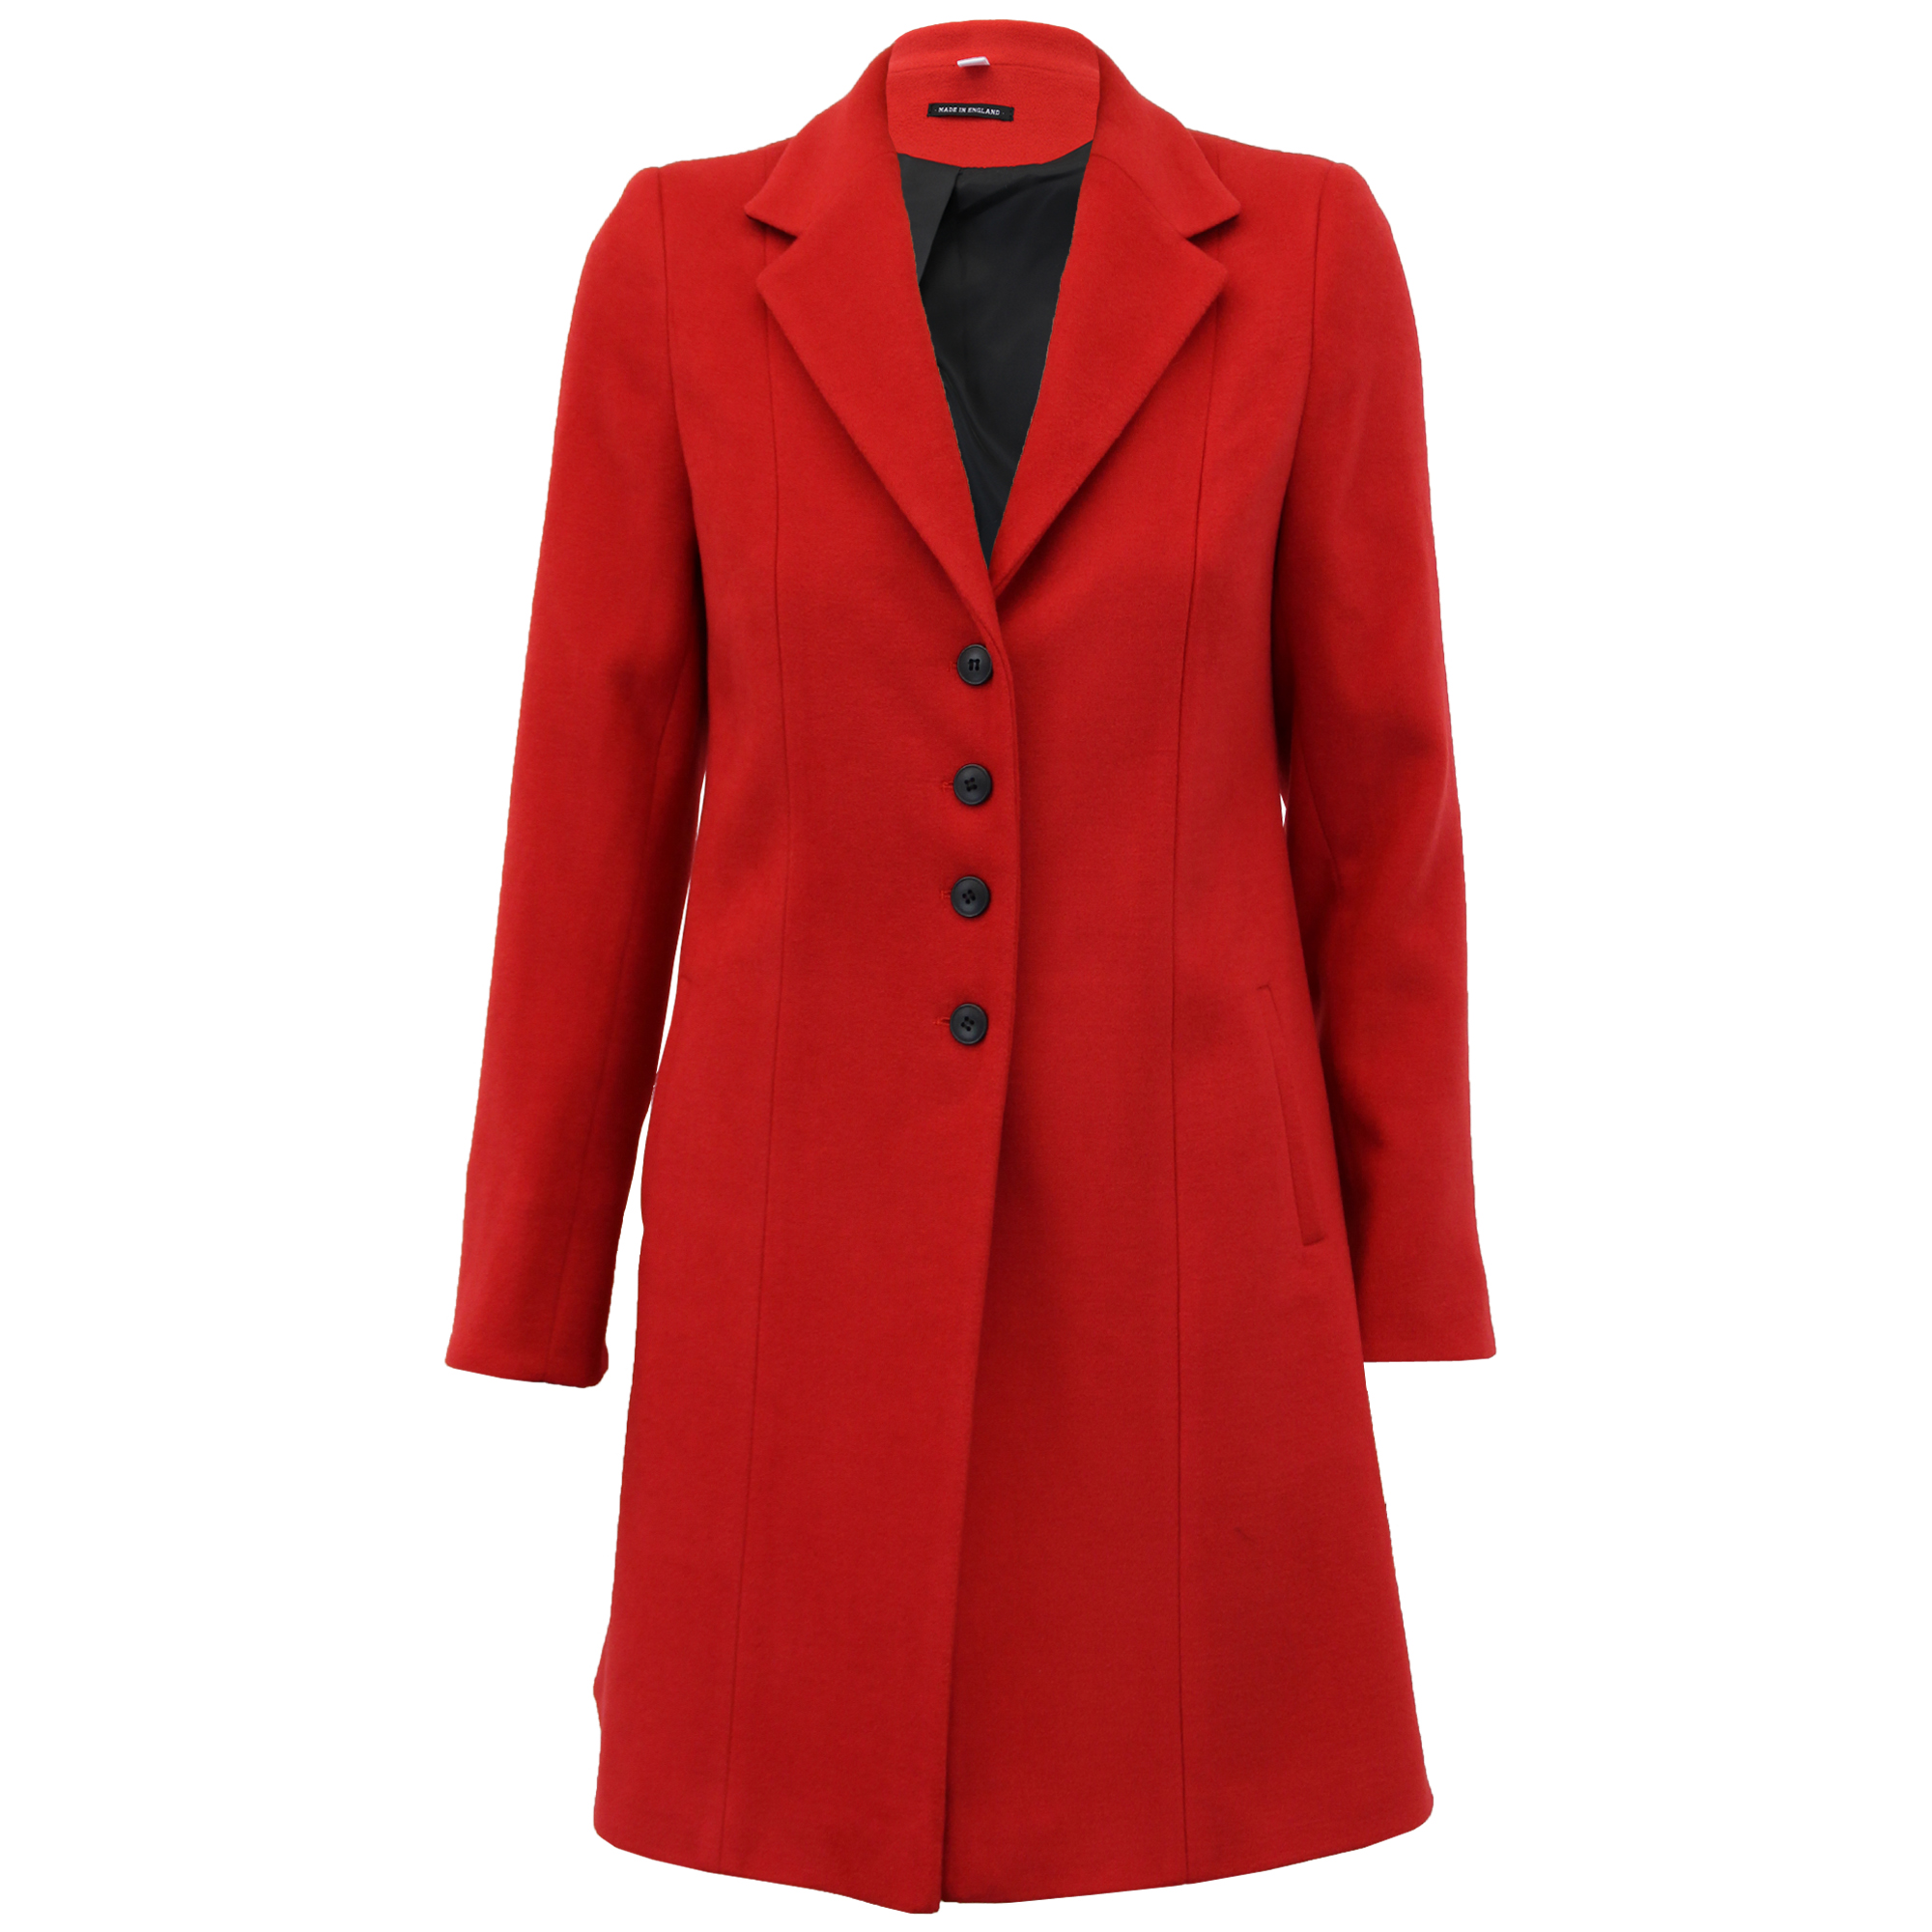 New look coats and jackets for womens